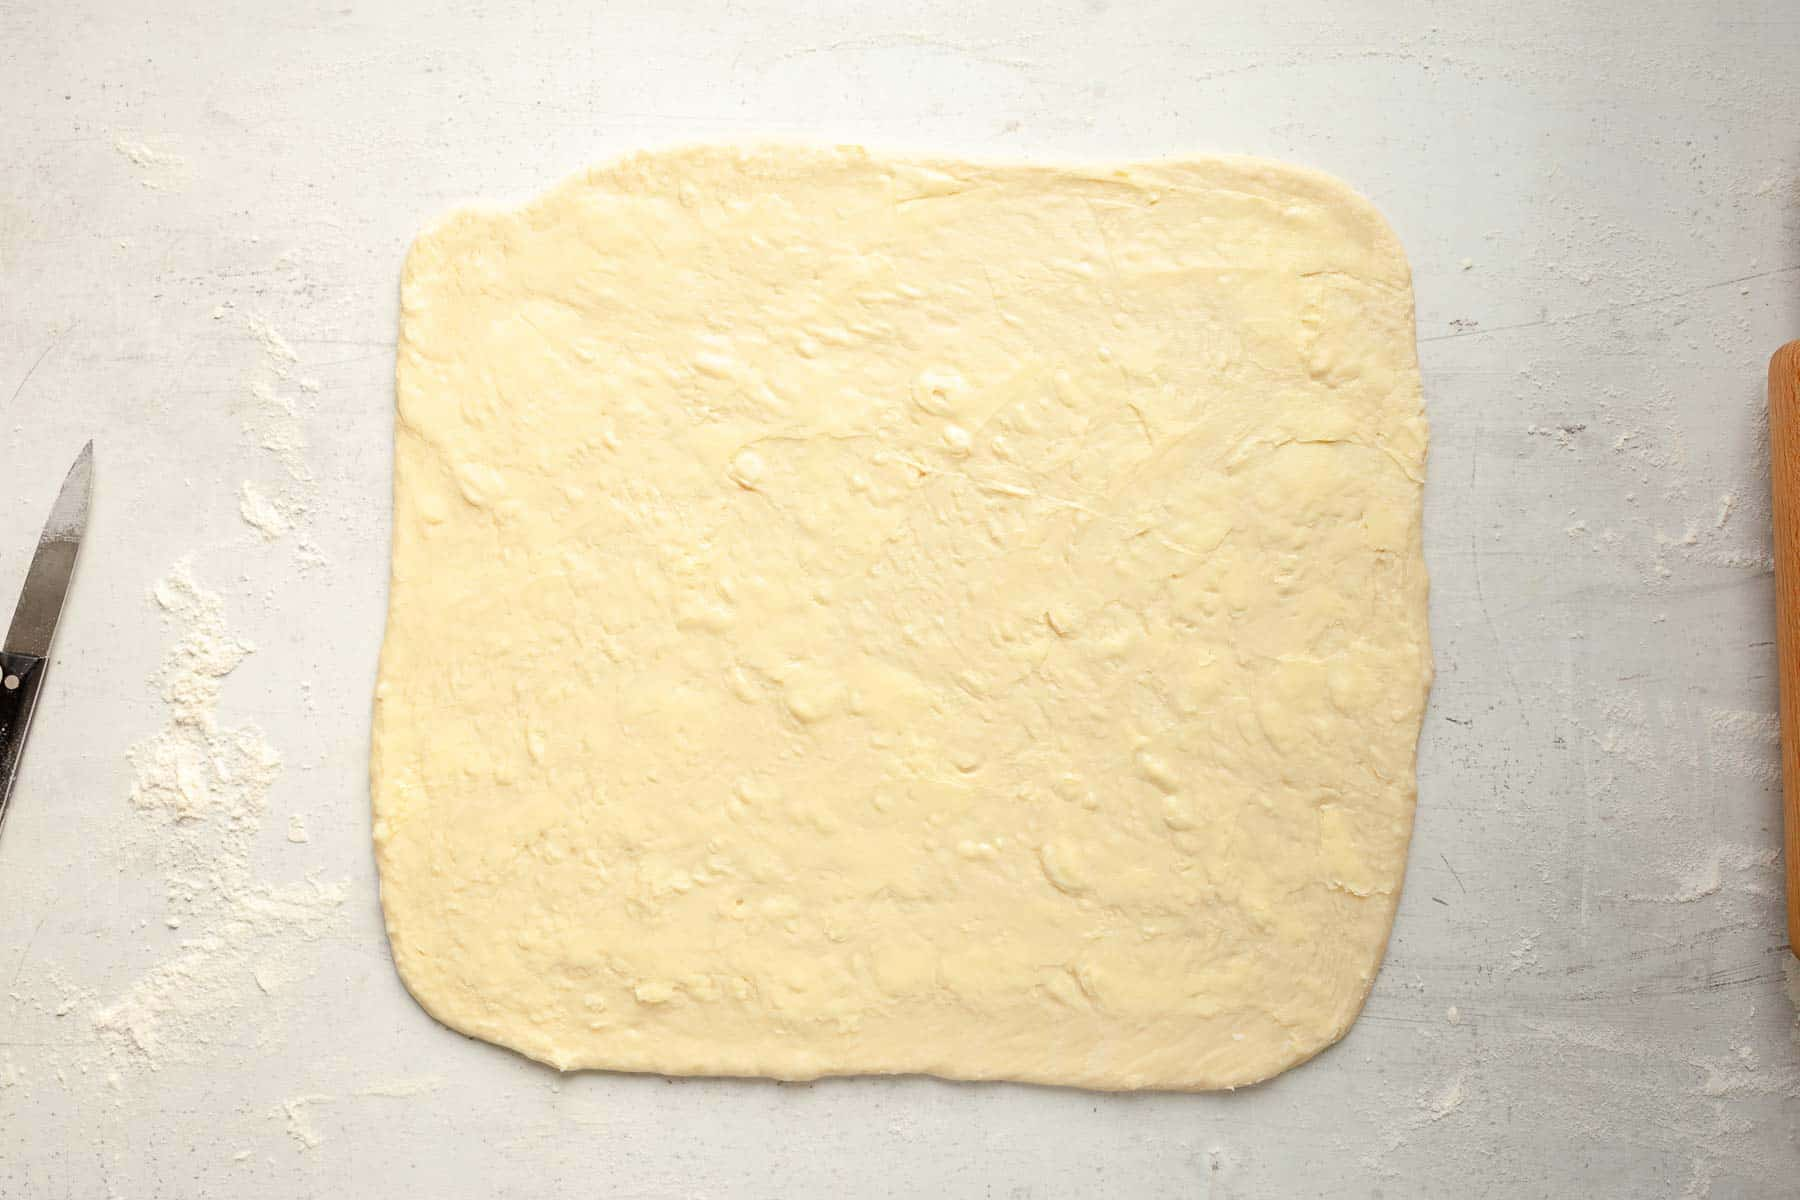 dough rolled into rectangle for chocolate rolls